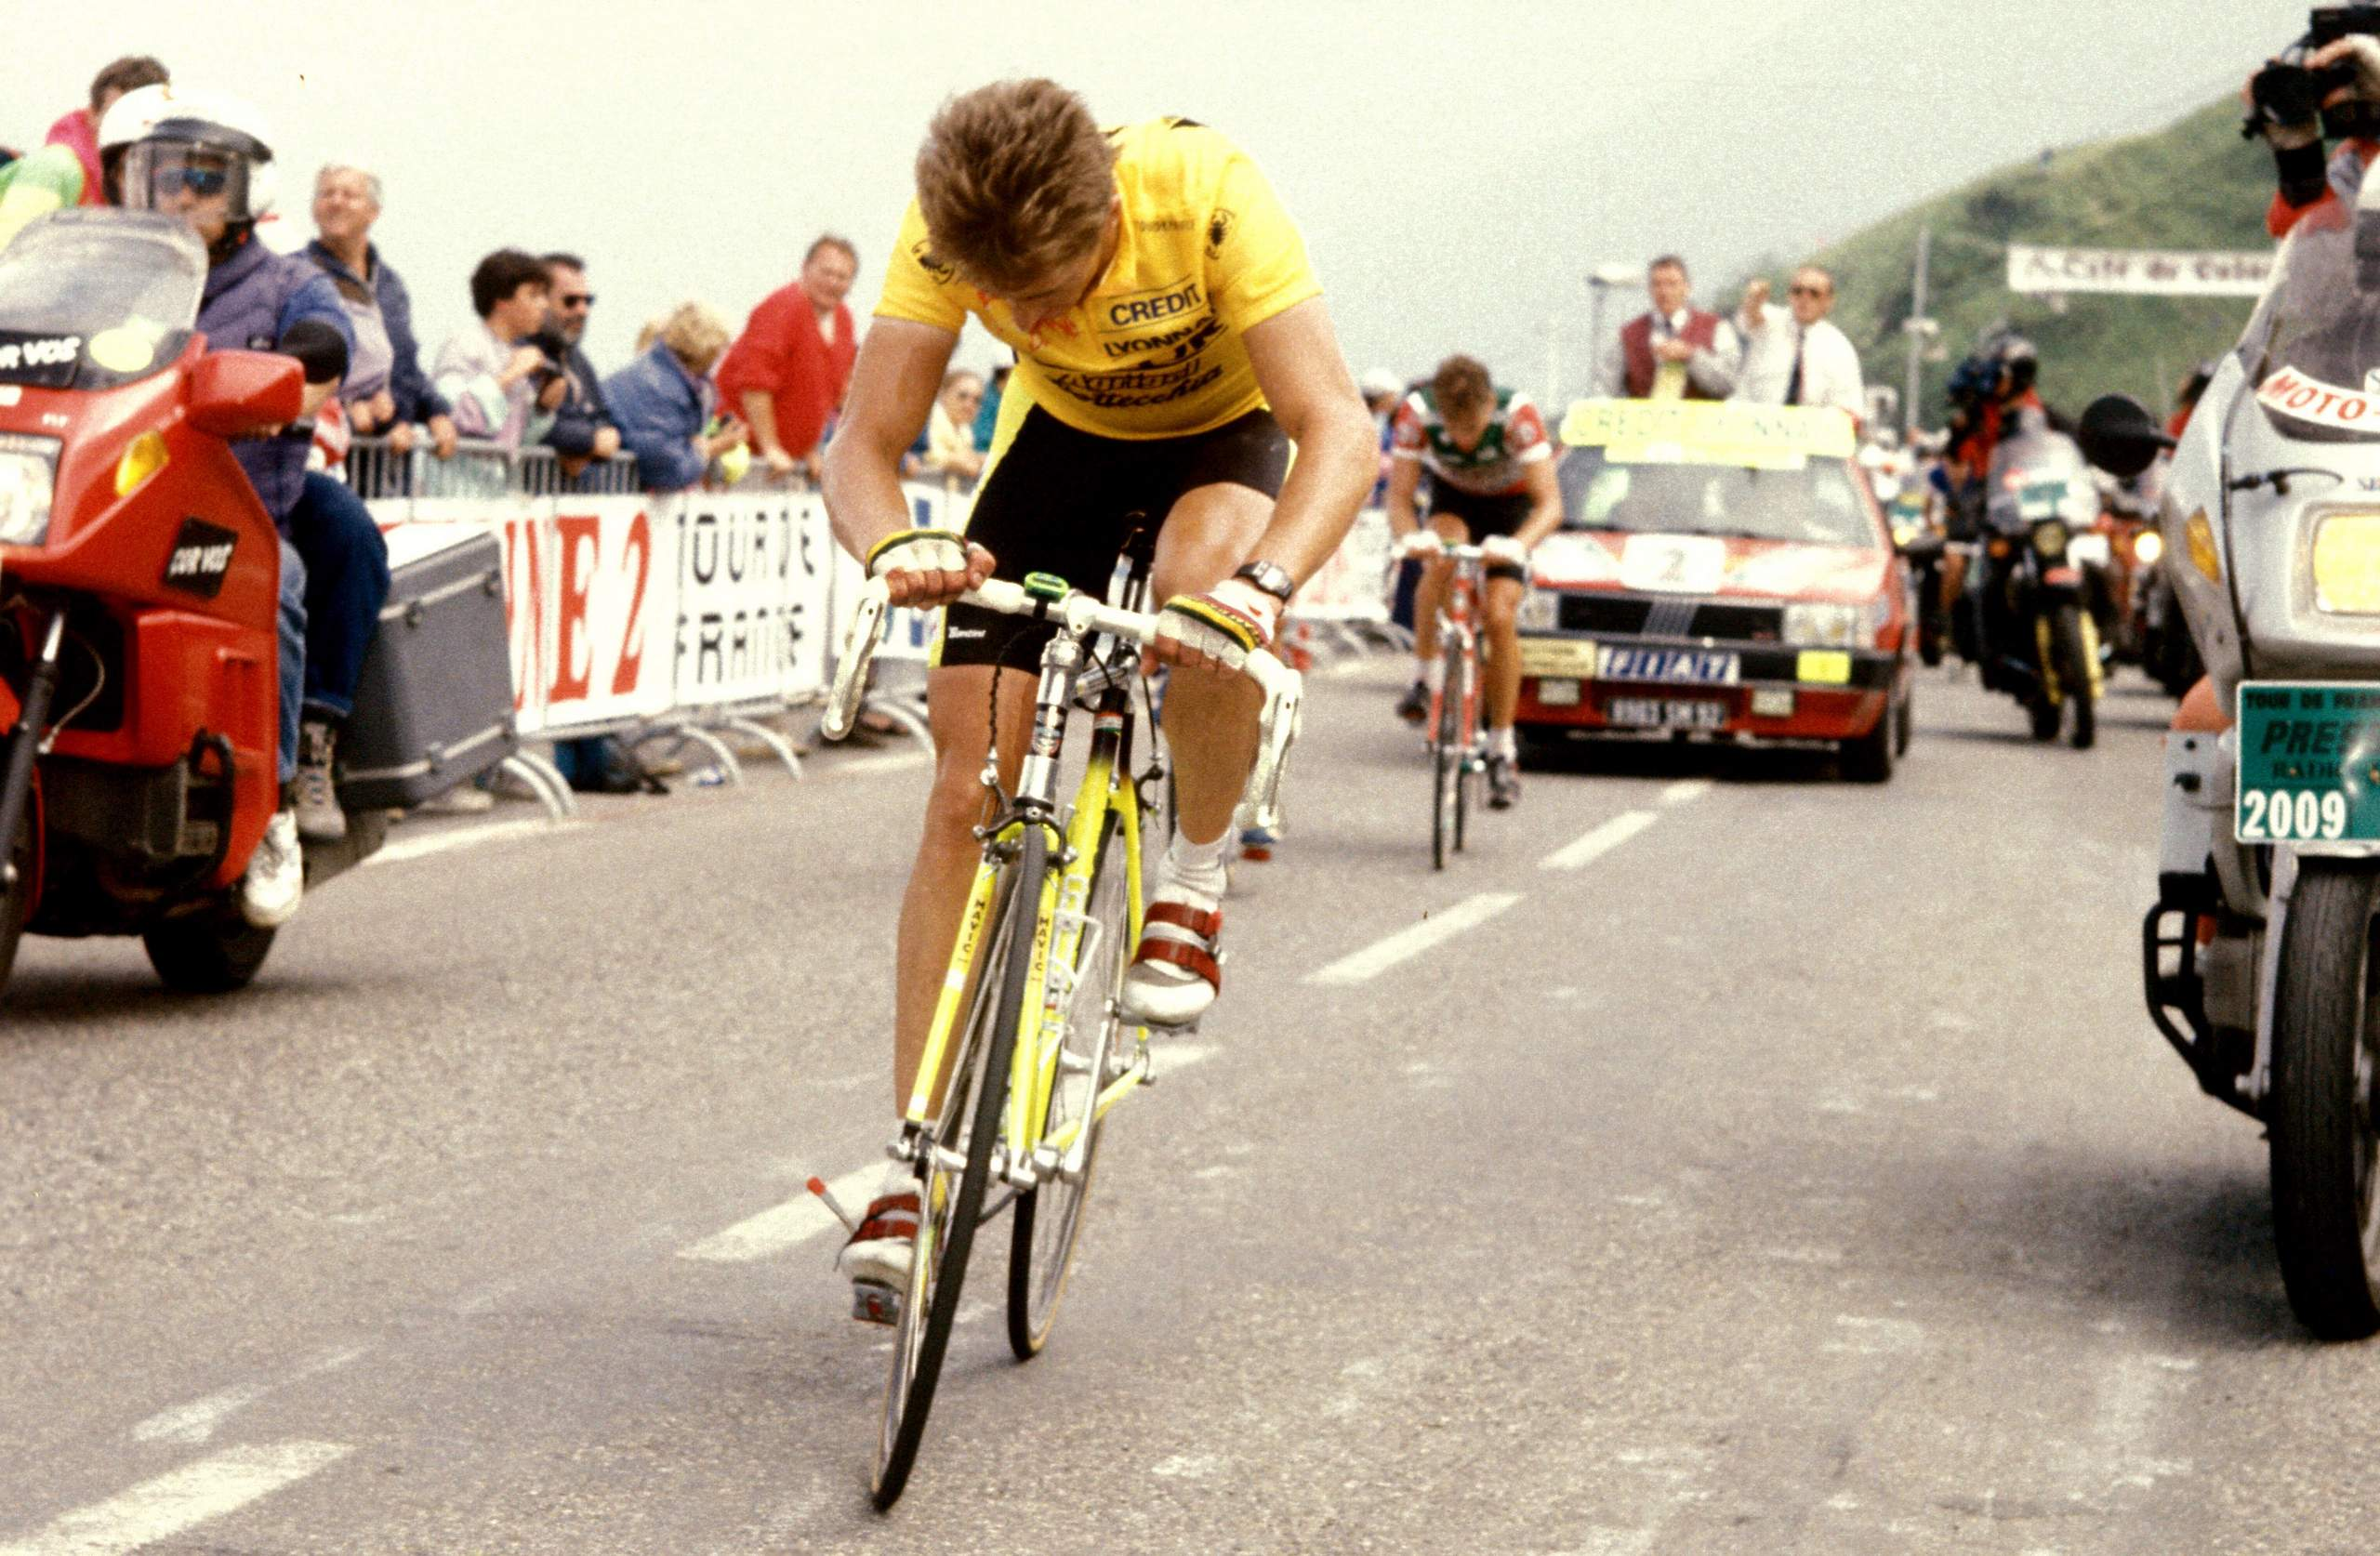 b3ffefda0ce ... Greg LeMond (USA) 500m from finish at the Superbagneres Stage in the  1989 Tour ...